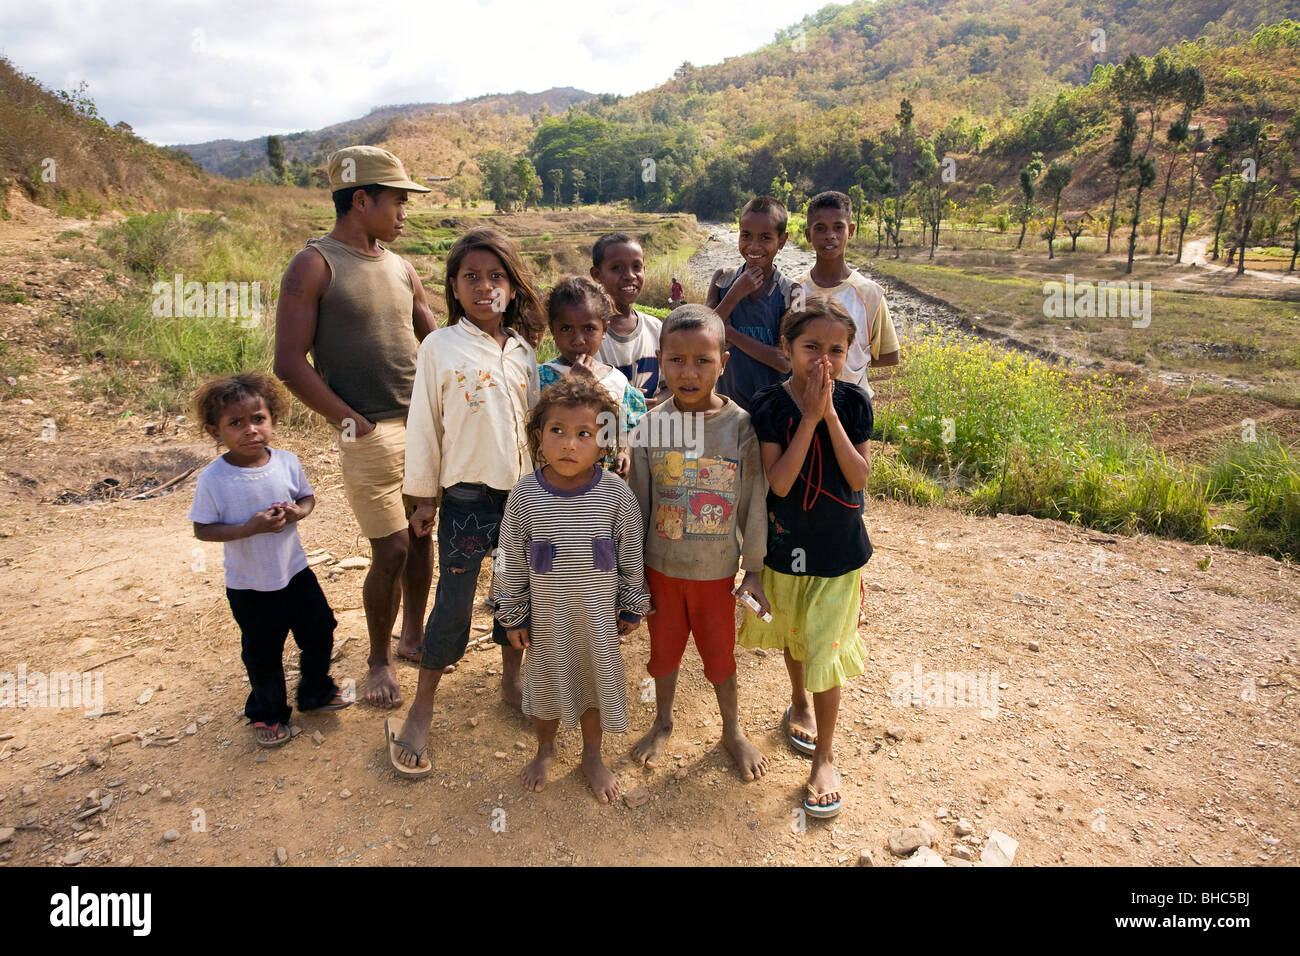 Group of children in remote western mountain valley in Alieu region East Timor - Stock Image